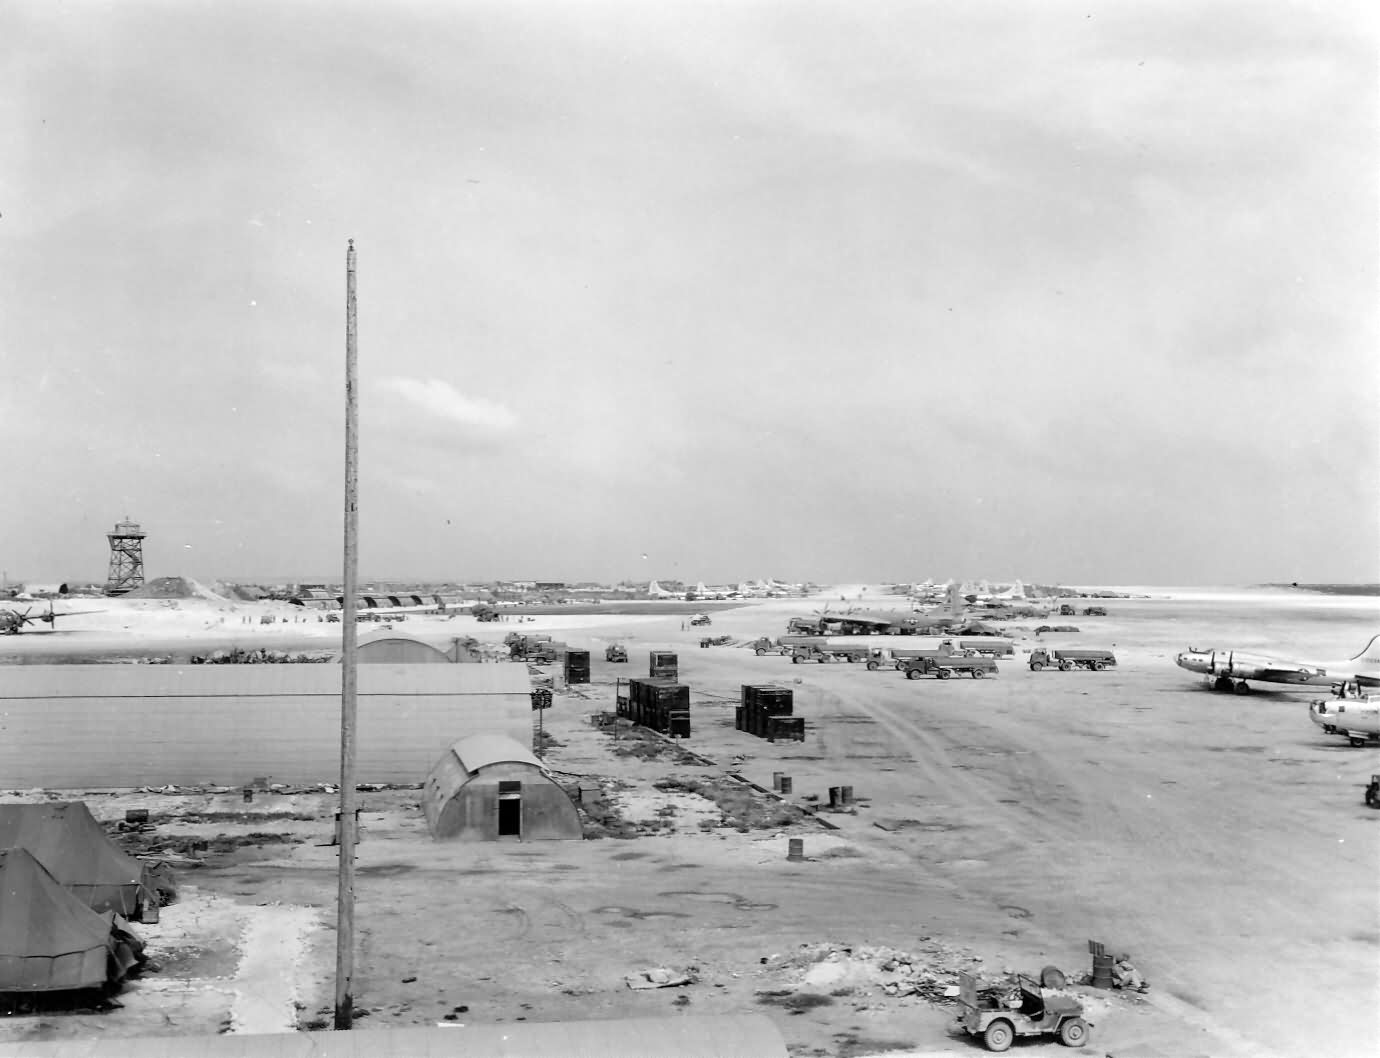 B-29 Superfortress bombers on TINIAN airfield Pacific PTO